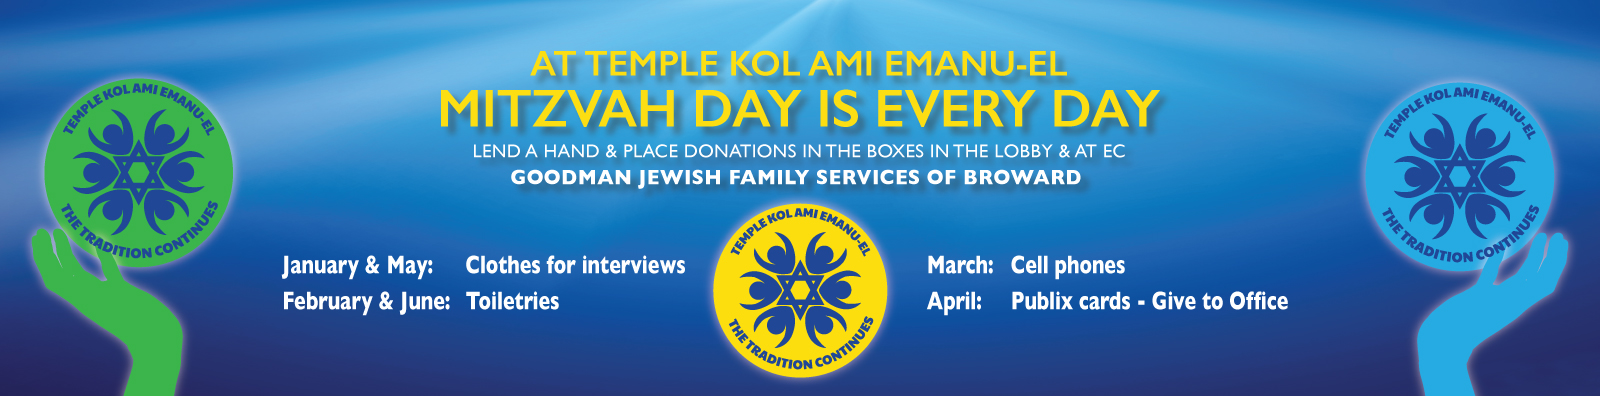 Mitzvah-Day-Is-Every-Day-Banner-Website-20161